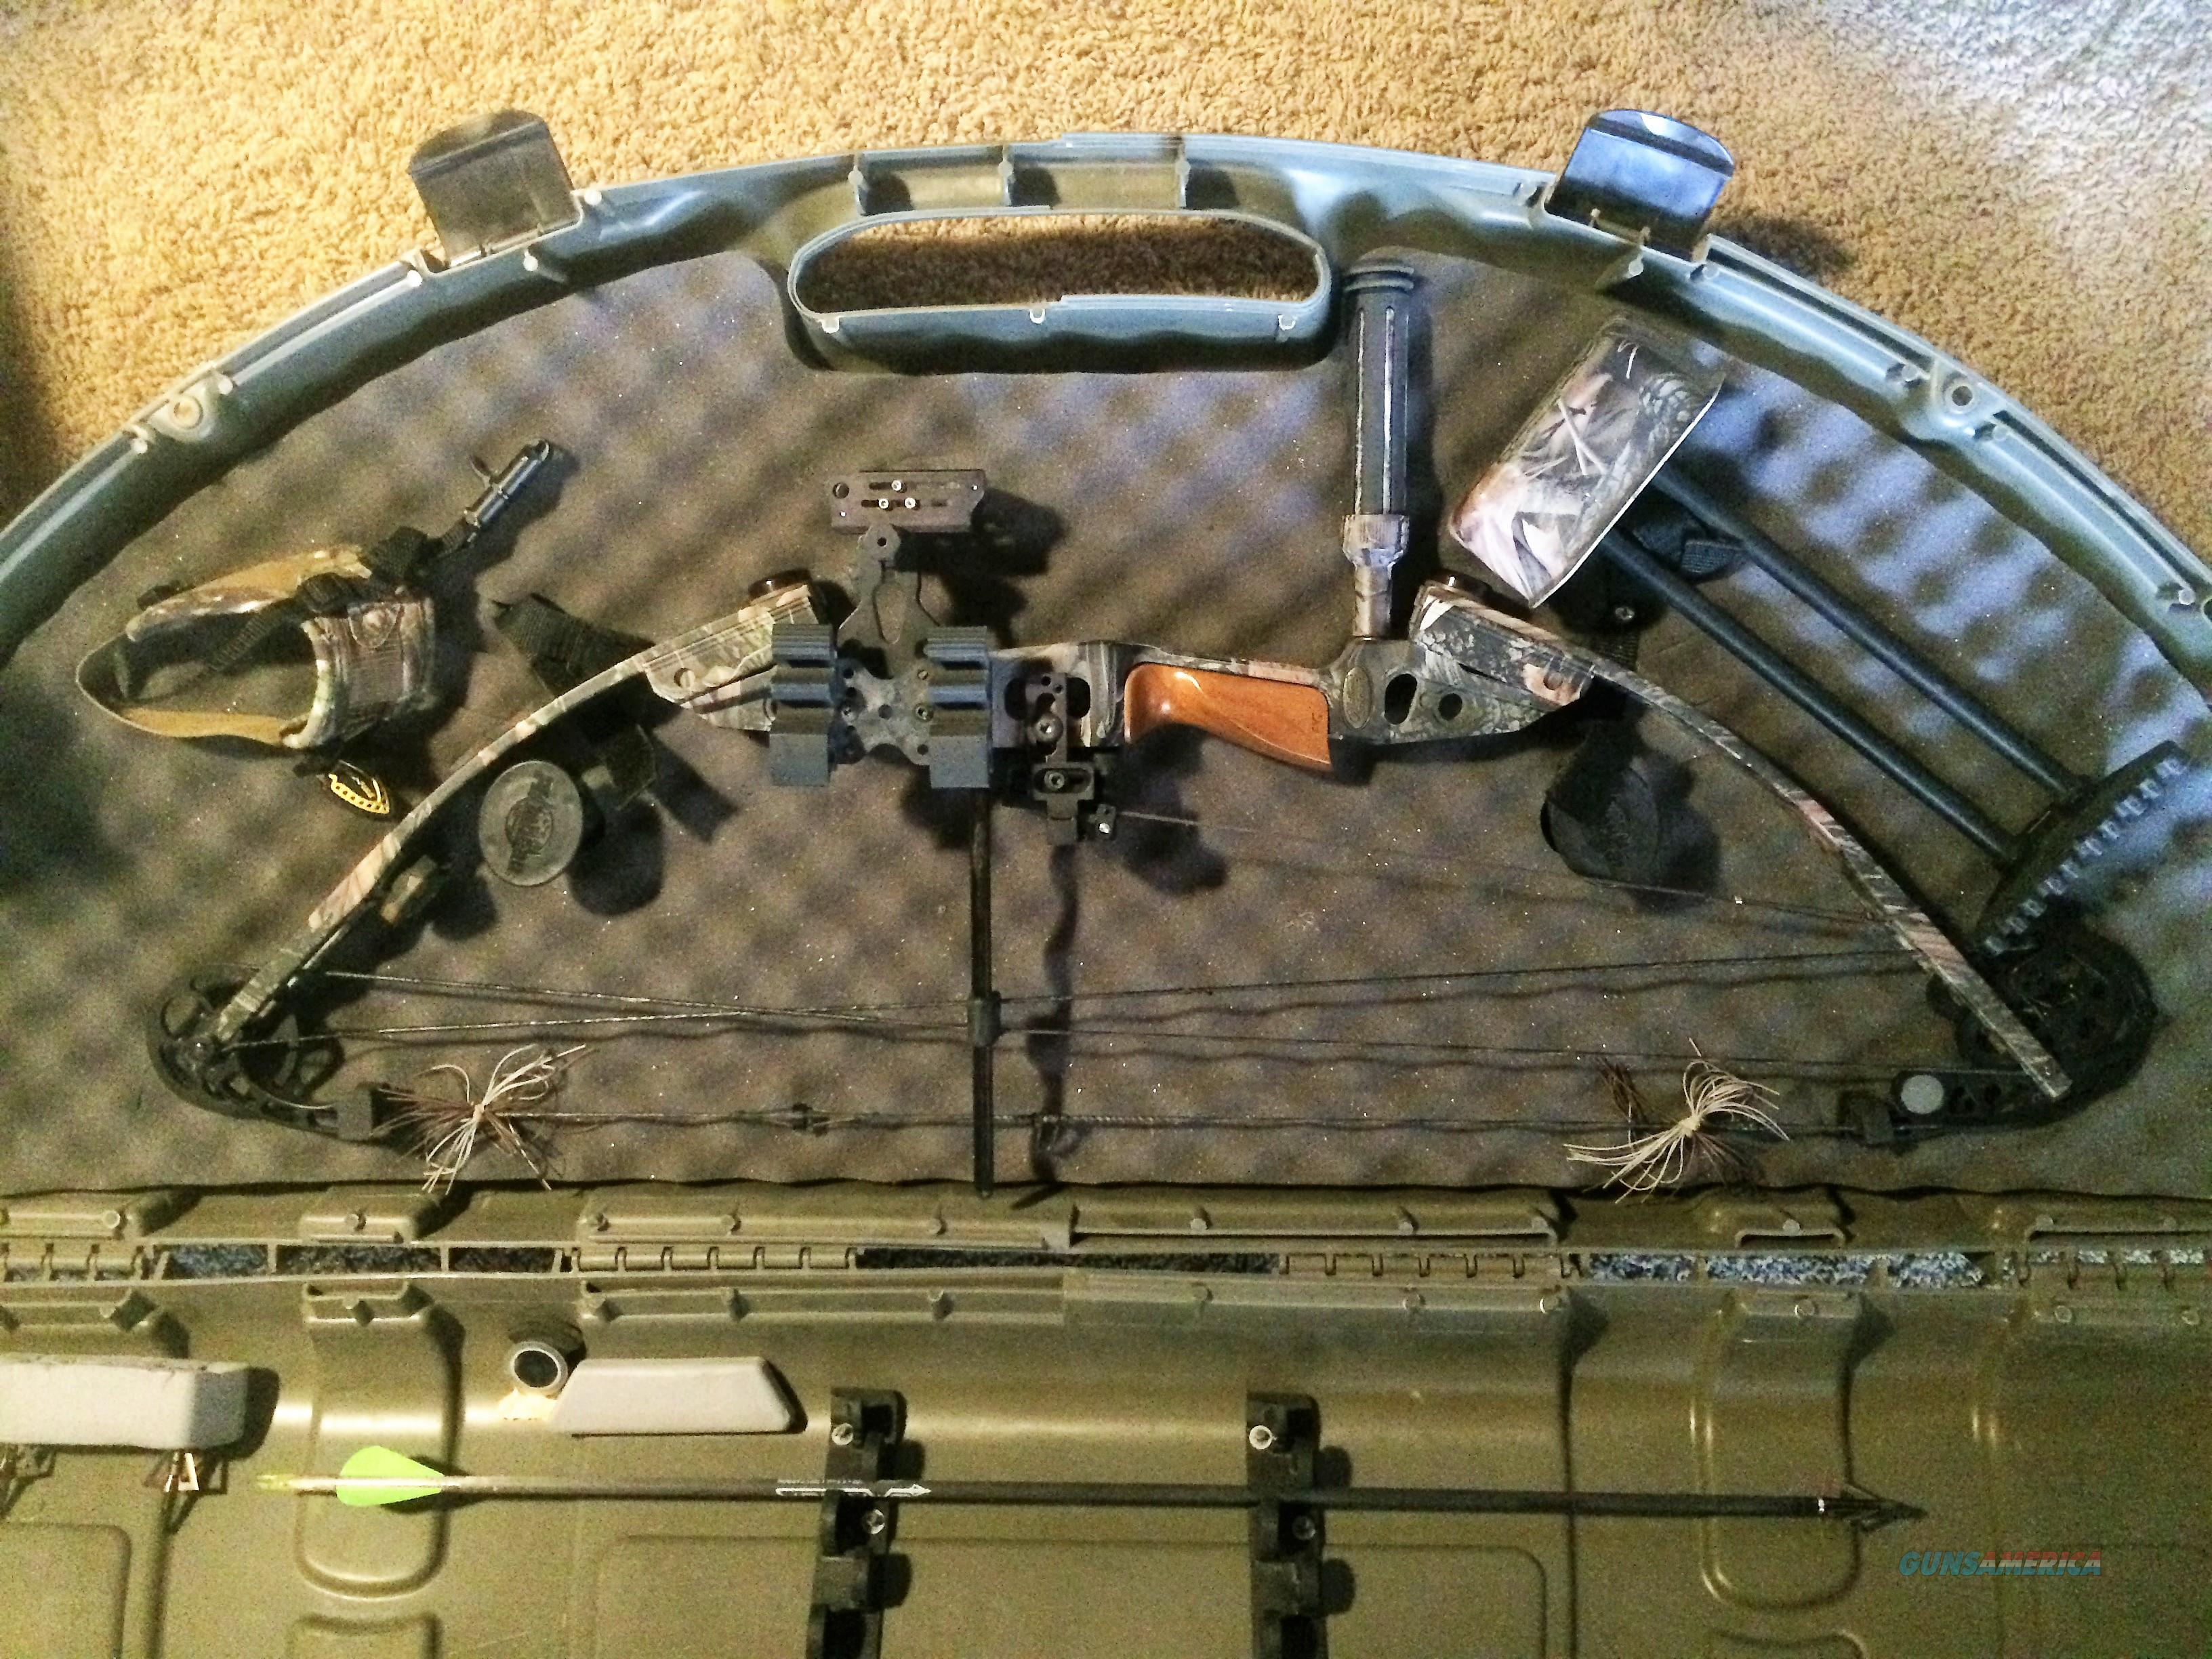 MATTEWS SOLO CAM FX2 COMPOUND BOW - COMPLETE PACKAGE READY TO HUNT!!  Non-Guns > Archery > Bows > Compound